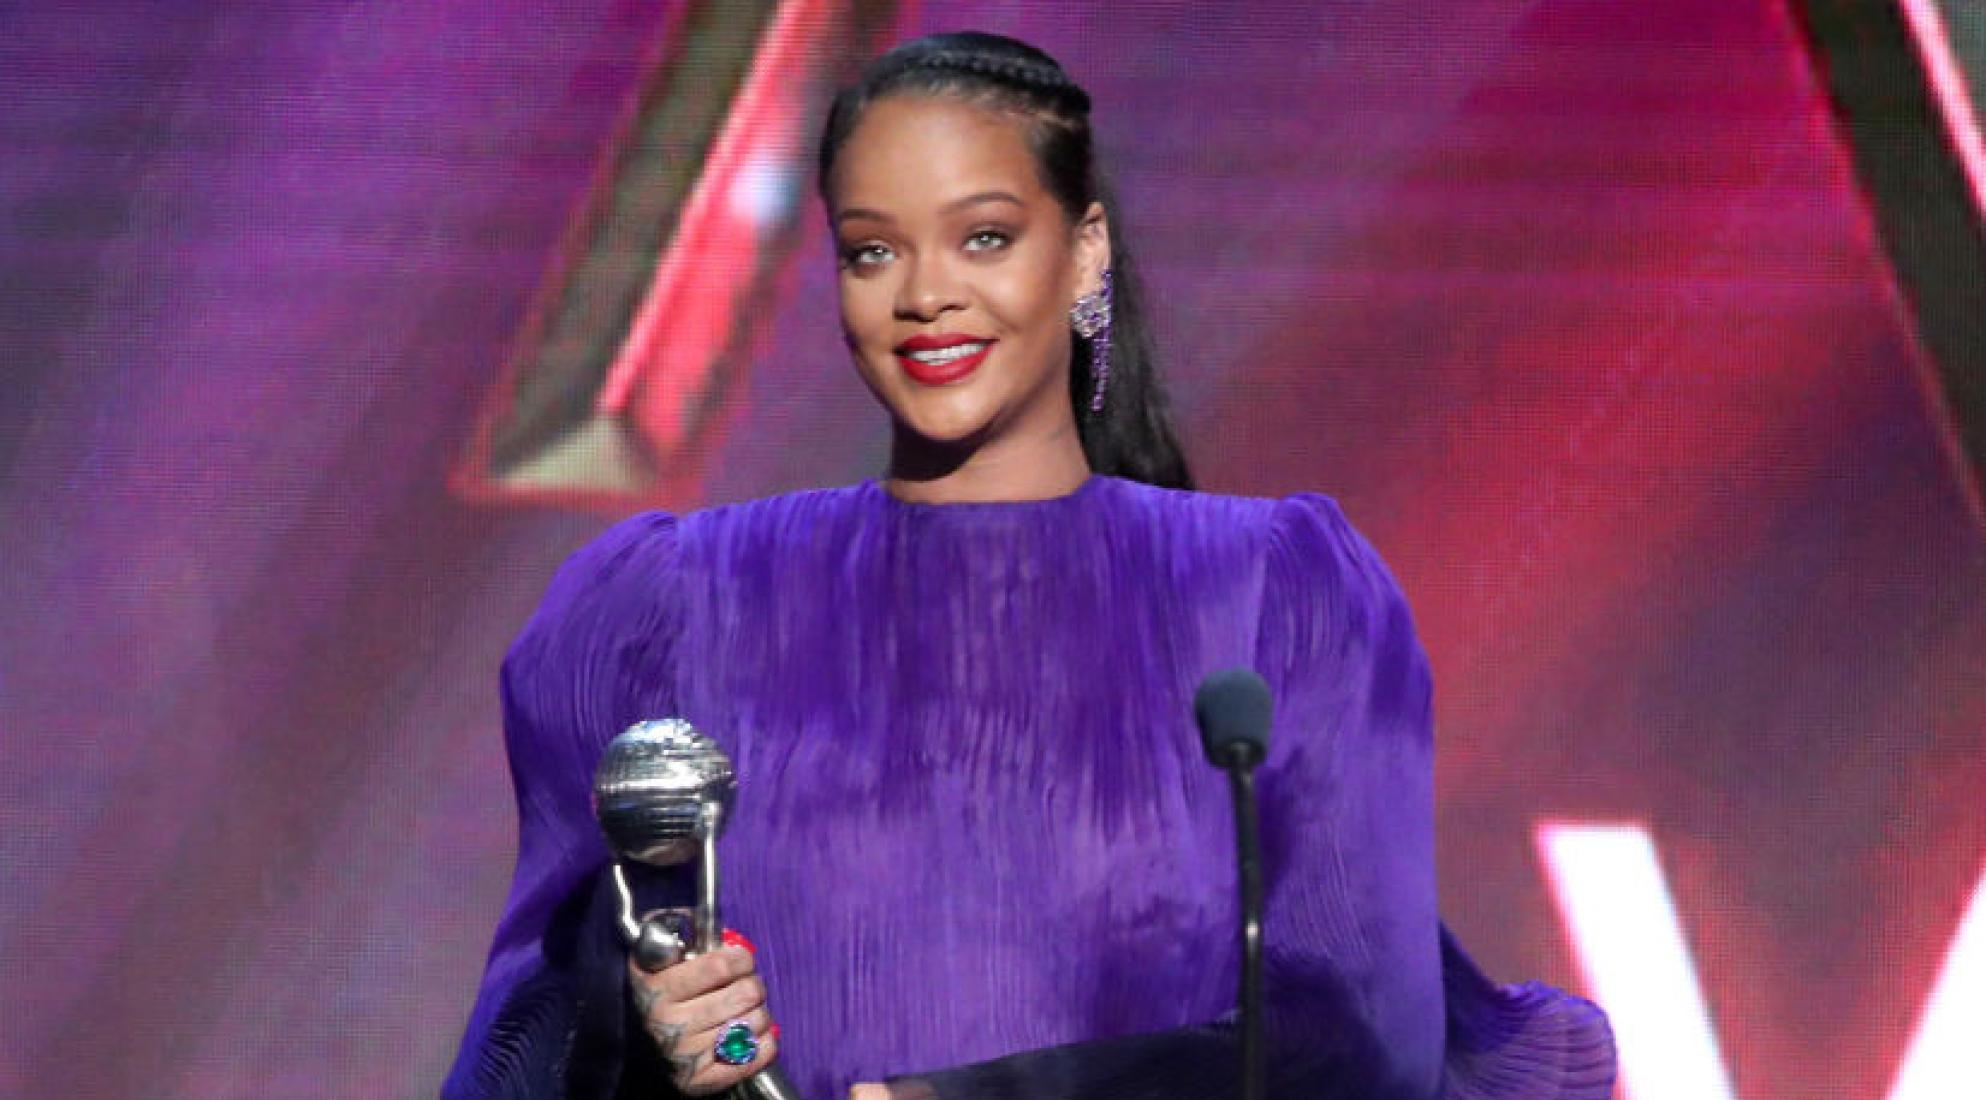 Rihanna at the 2020 NAACP Image Awards